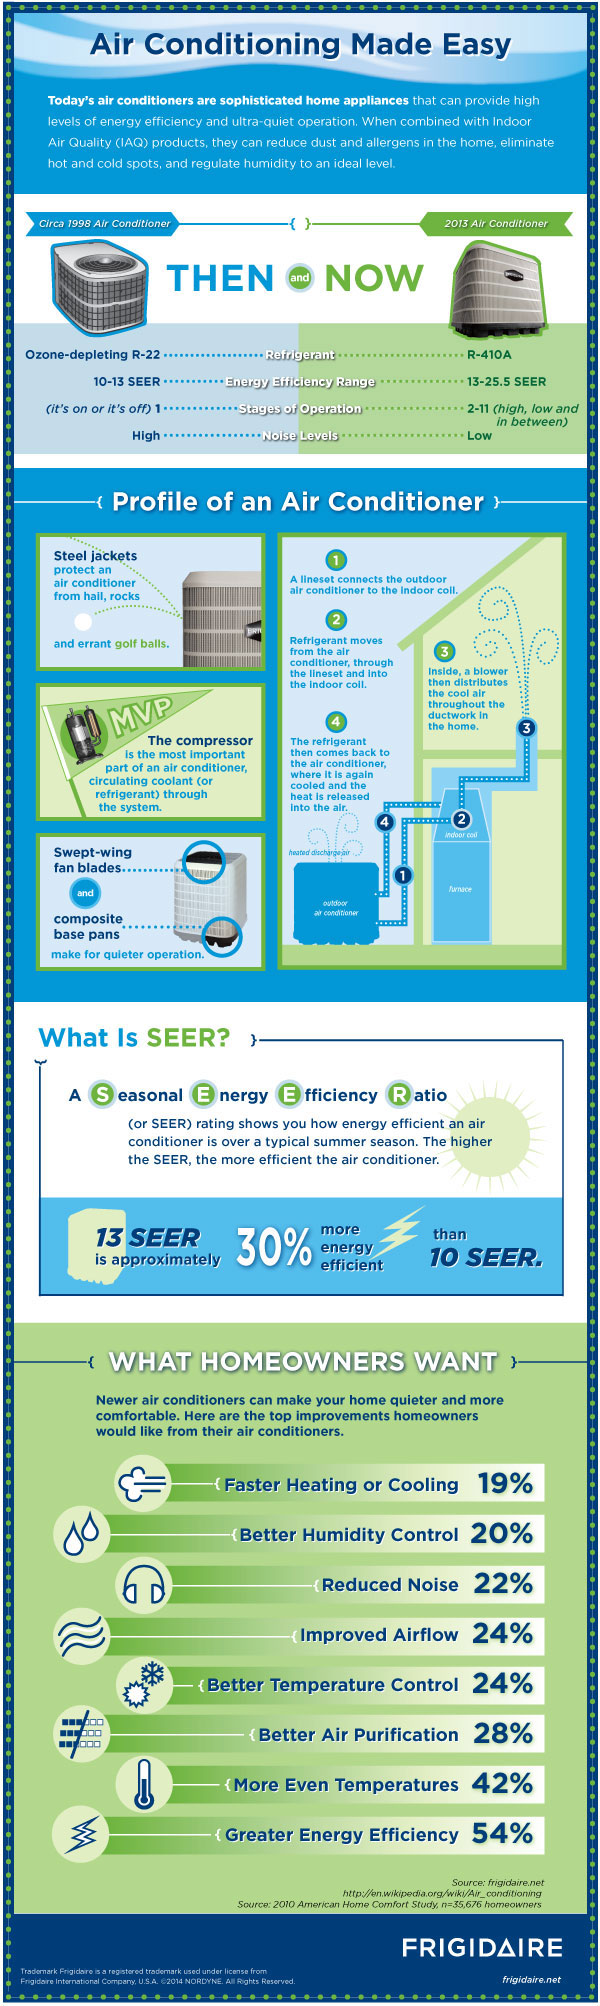 frigidaire-air-conditioning-made-easy-infographic-updated